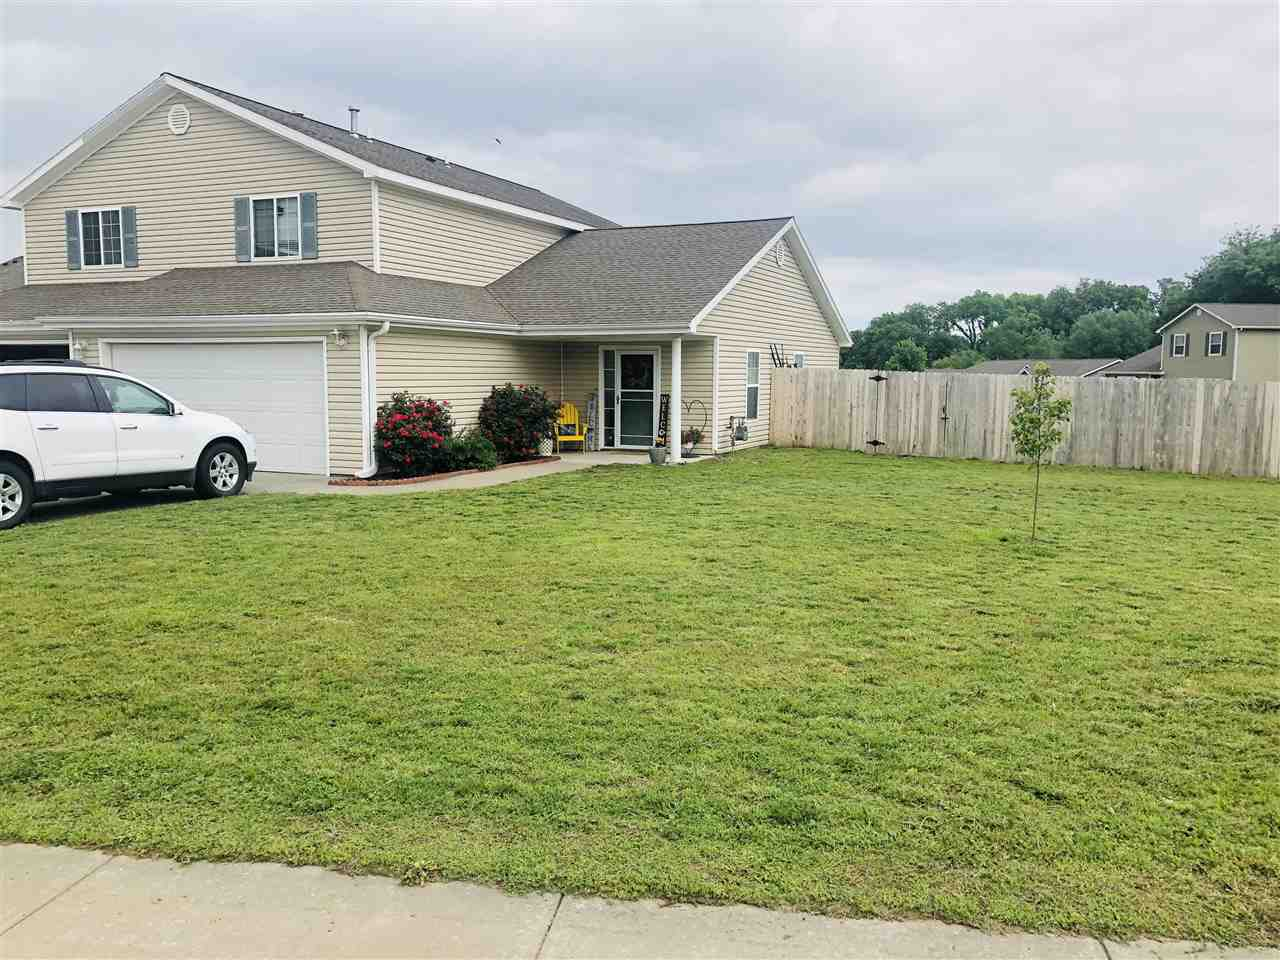 Location is key and this home is it! Quick commute to Fort Riley as well as K-state and downtown Manhattan.  Open floor plan with Master bath and walk-in closet. Laundry is on main floor which is a huge plus. Kitchen has rustic alder cabinetry with black appliances. Lot is AMAZING - large corner lot with wood privacy fence.  Ready to close quick and move in. Call Margaret Johnson with Realty Executives for a private showing 785-307-1714